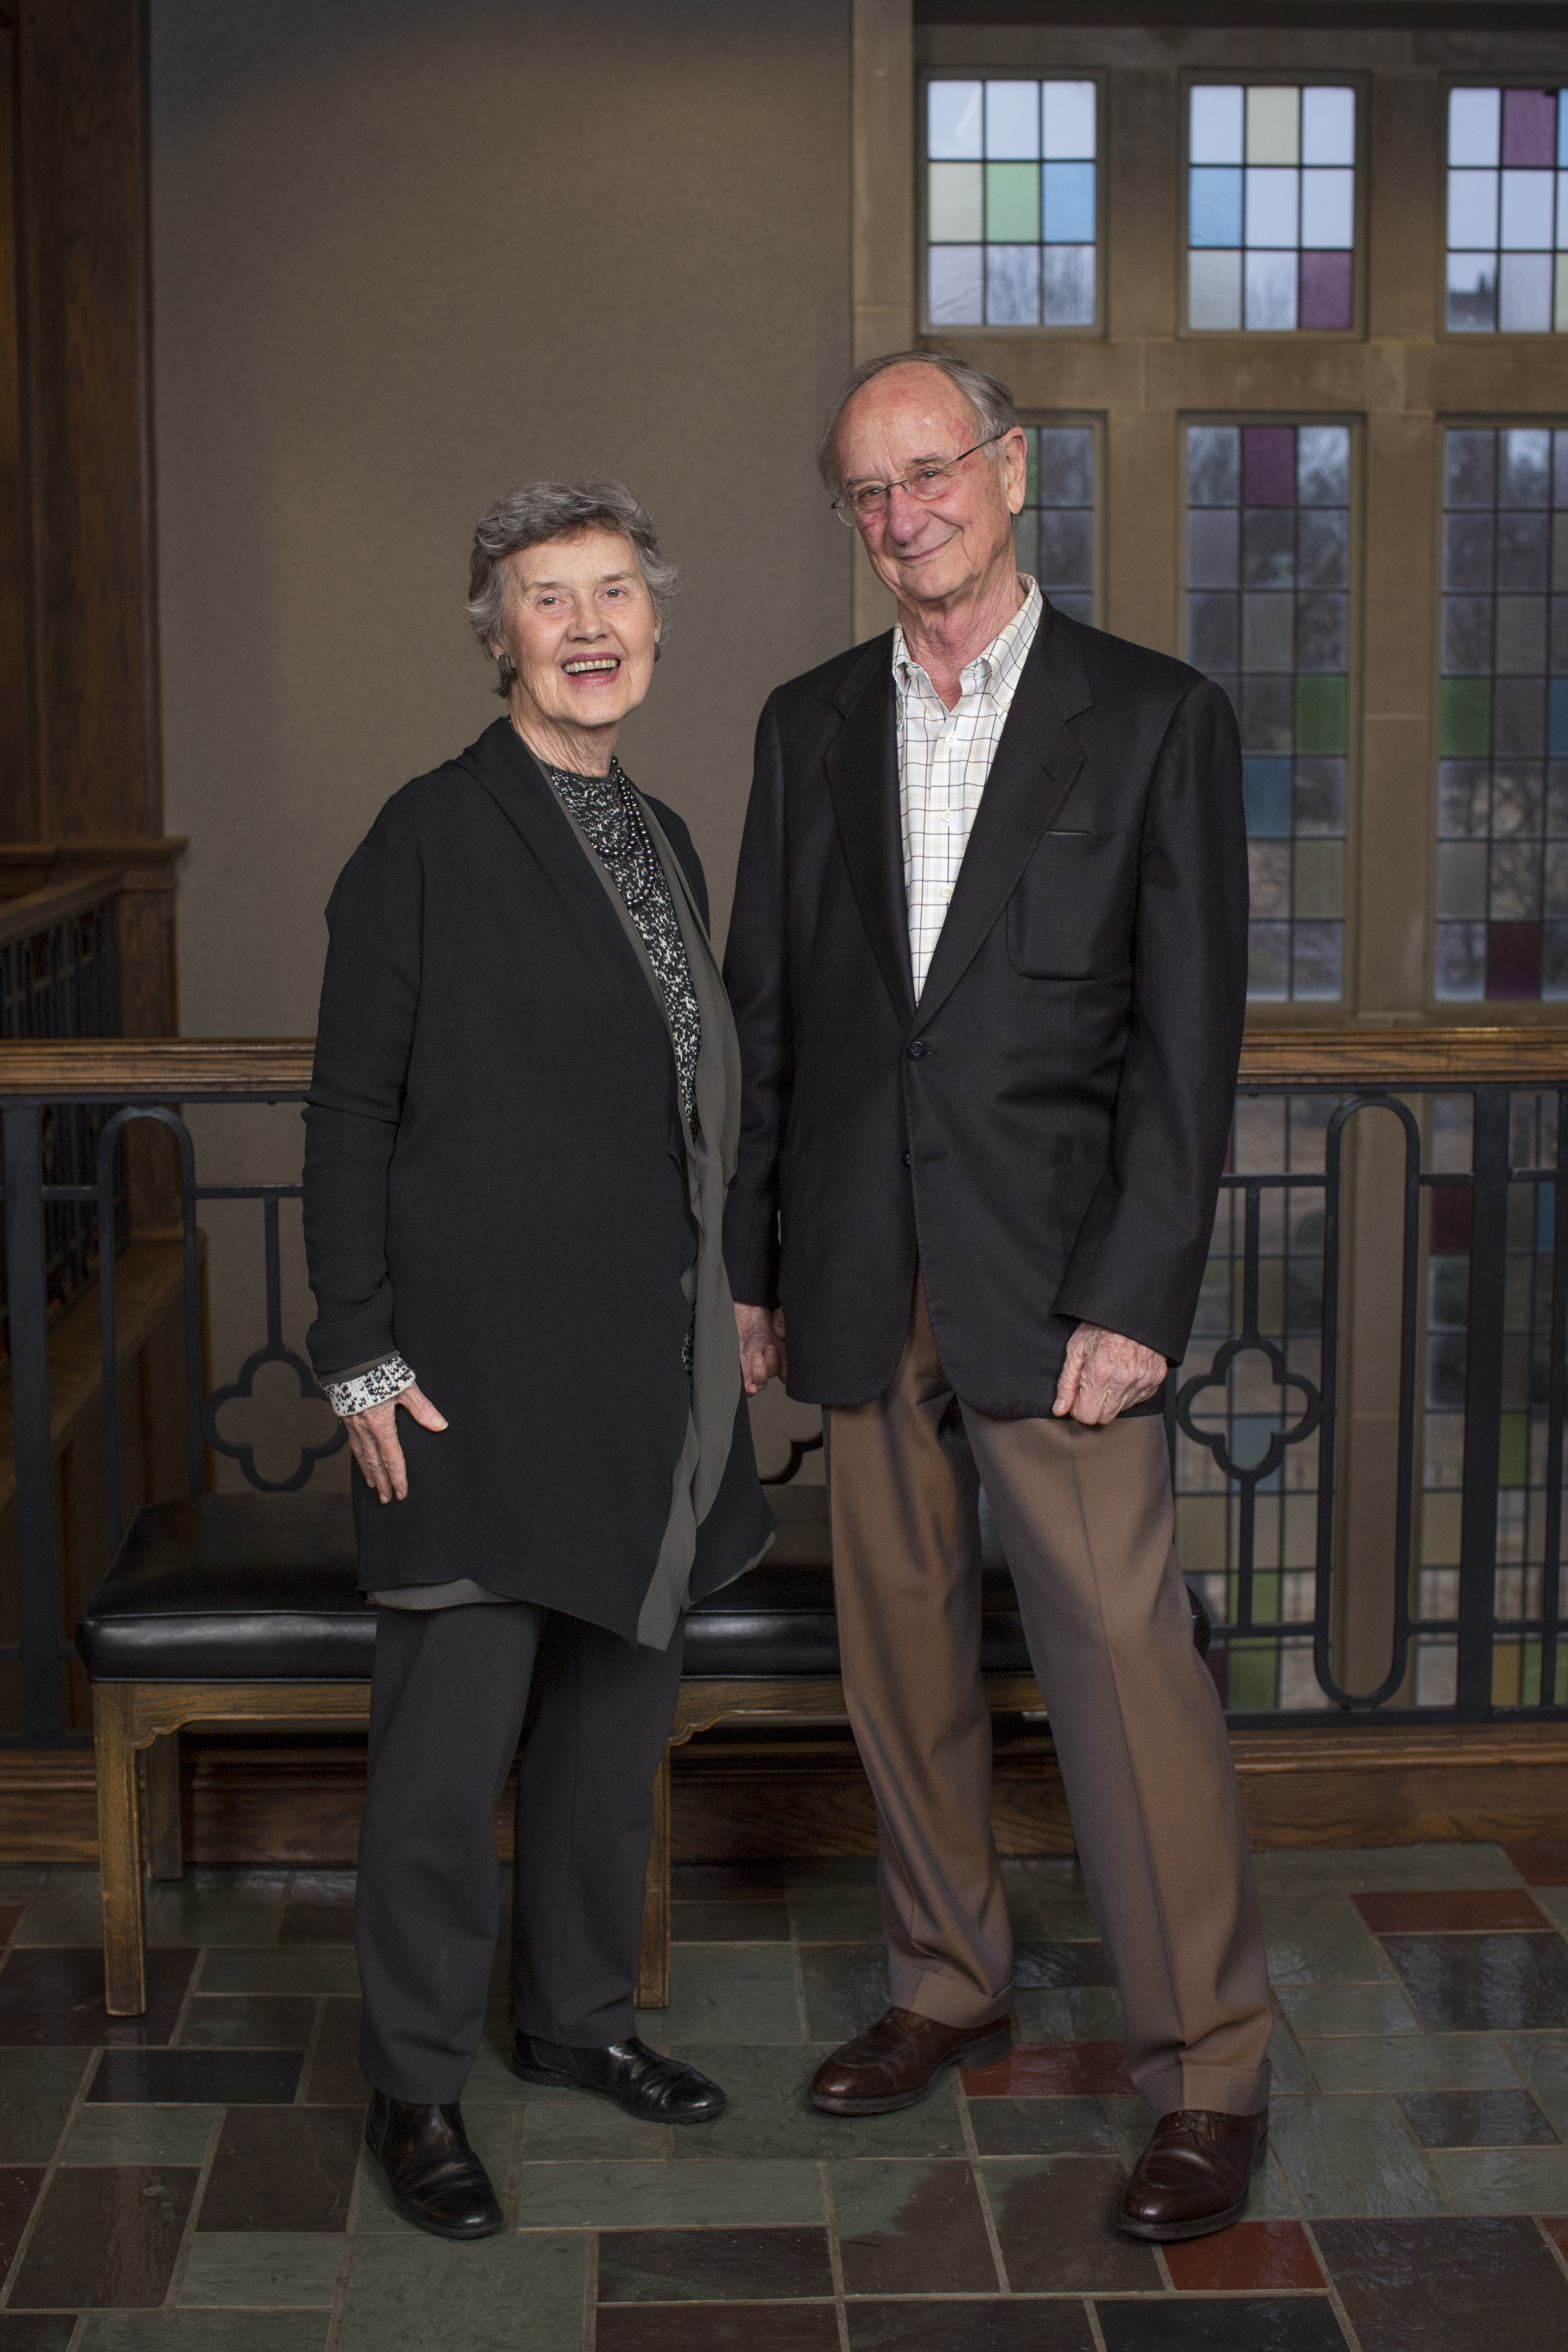 Lynne and Henry Turley stand together, looking at the camera